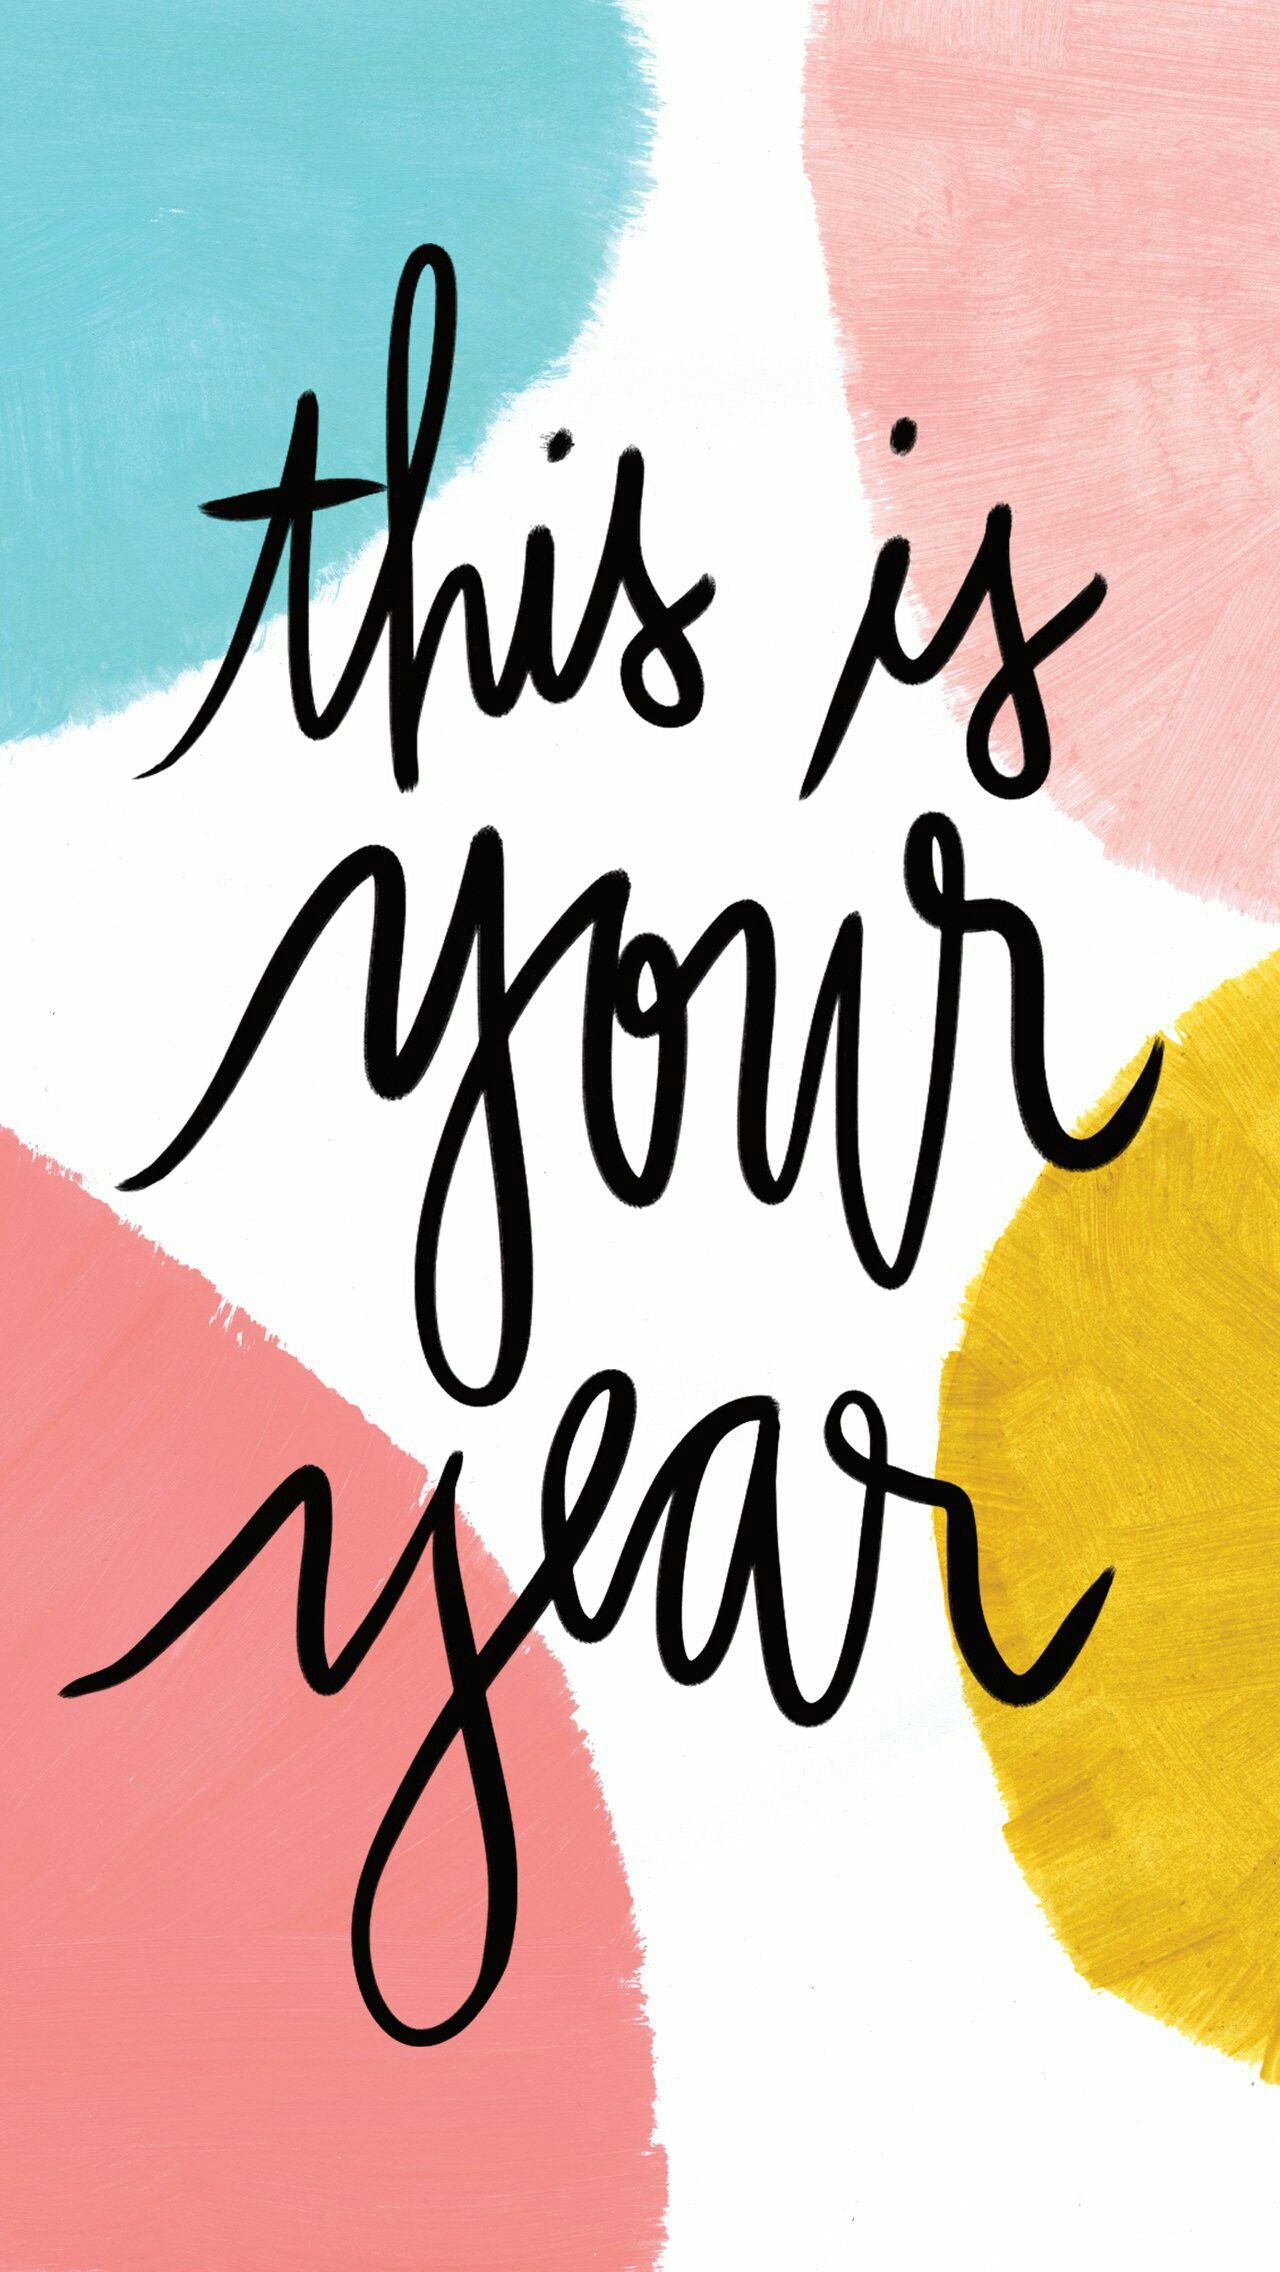 And my next year would the next year! | Quotes about new ...